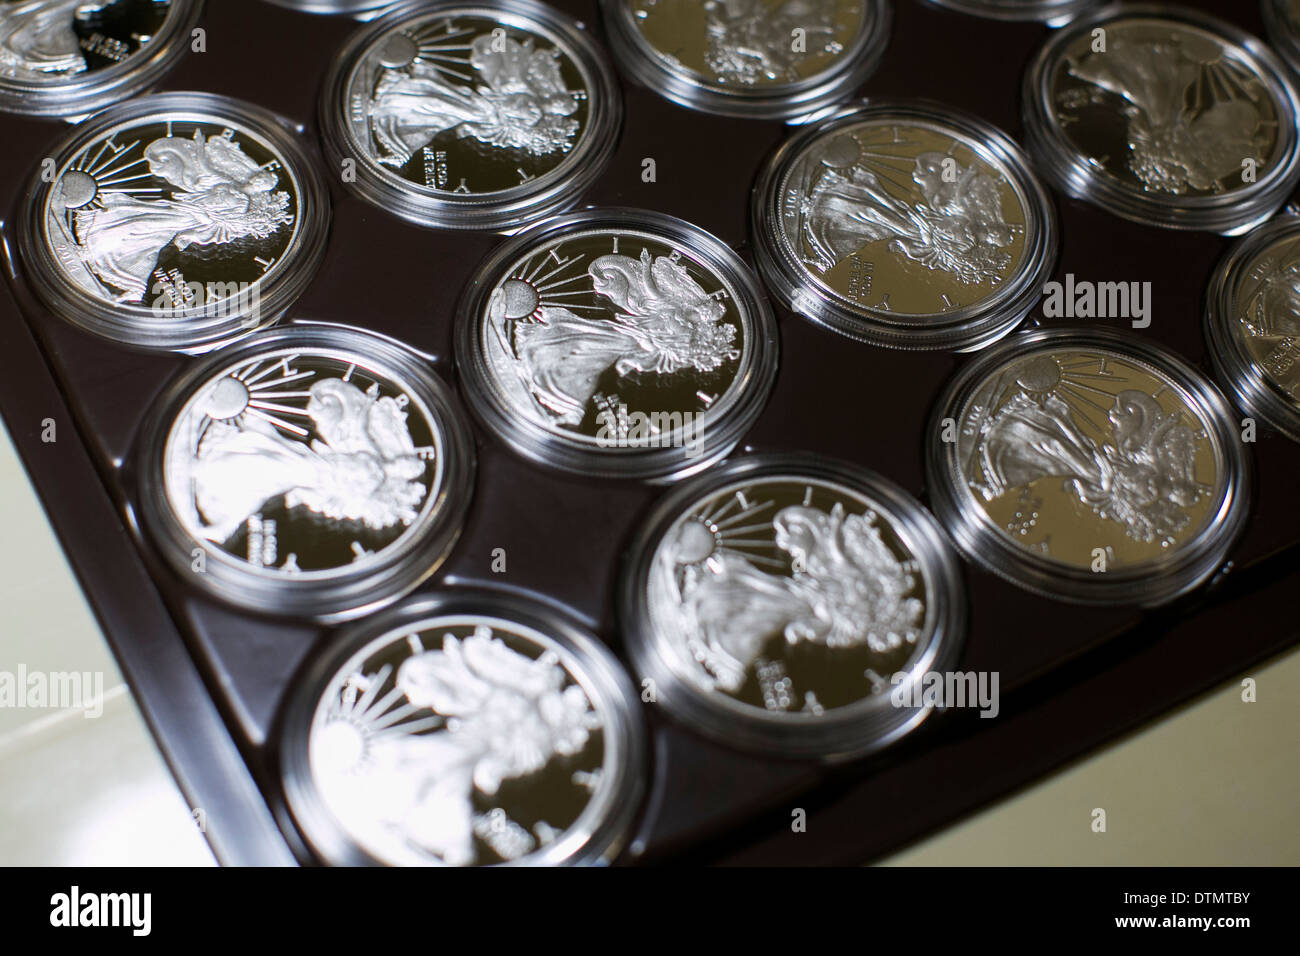 1 ounce Silver Eagle bullion and proof coin production at the West Point Mint.  - Stock Image